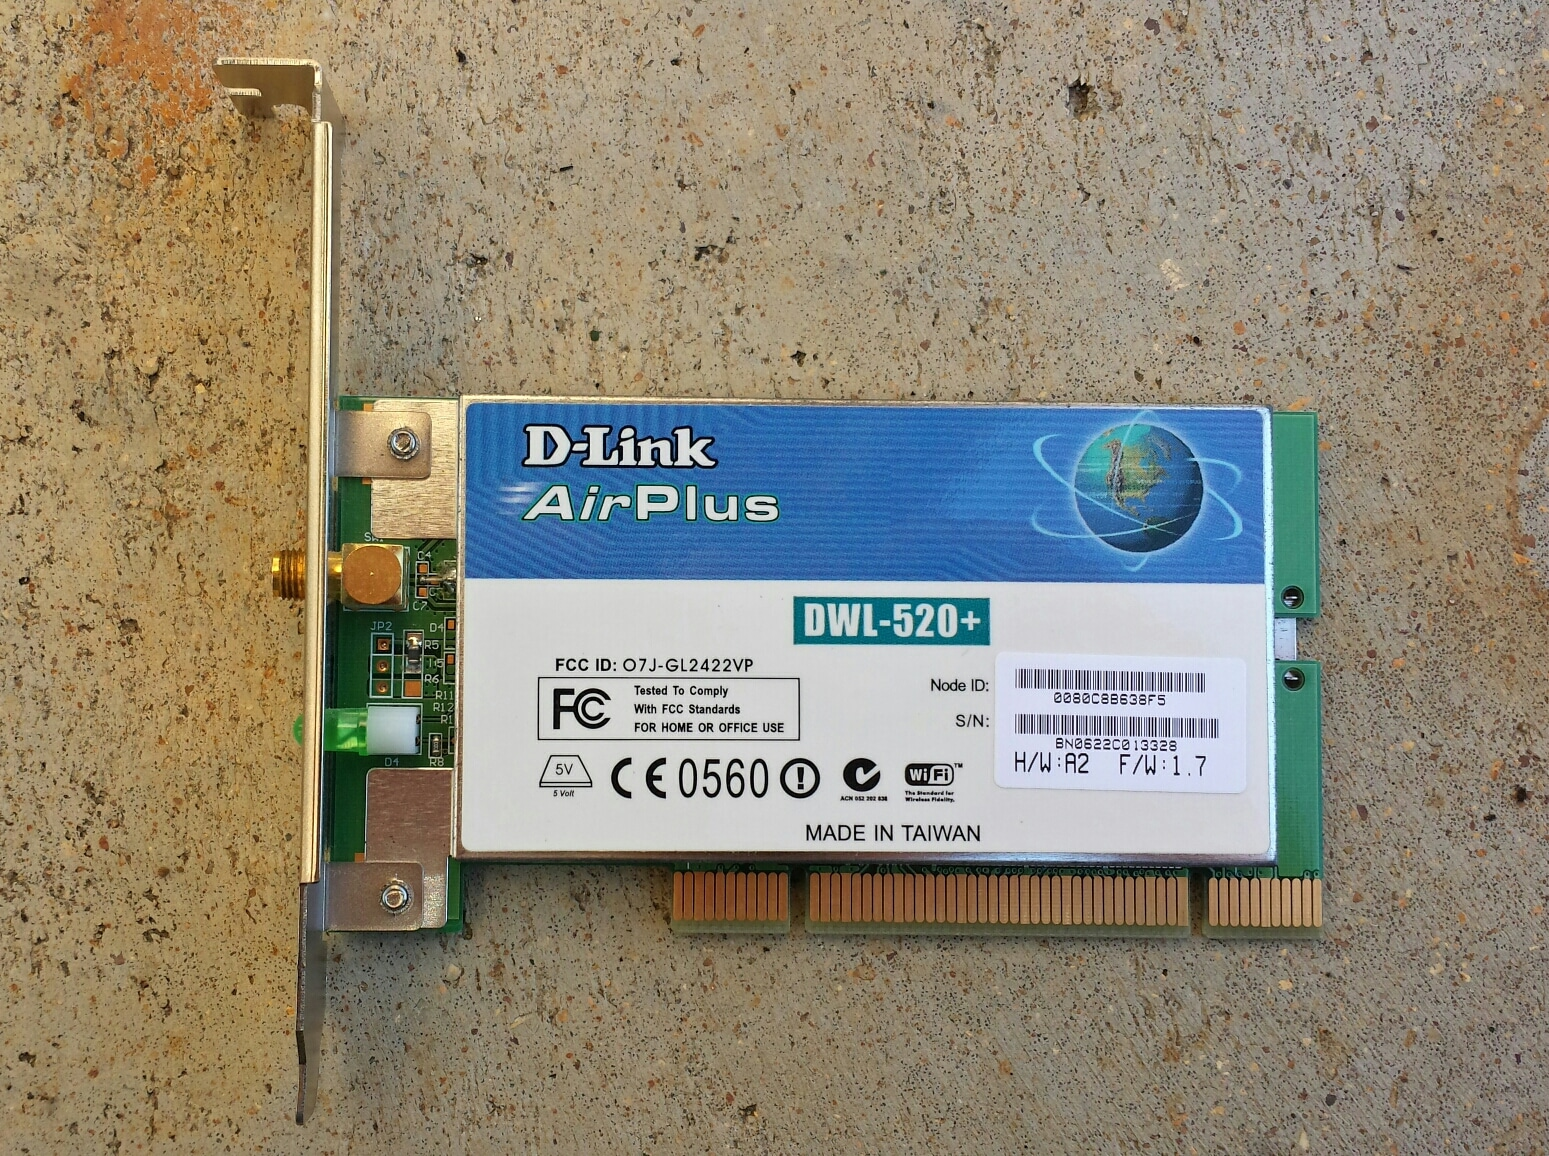 D-LINK AIRPLUS DWL-520 WIRELESS DRIVER DOWNLOAD